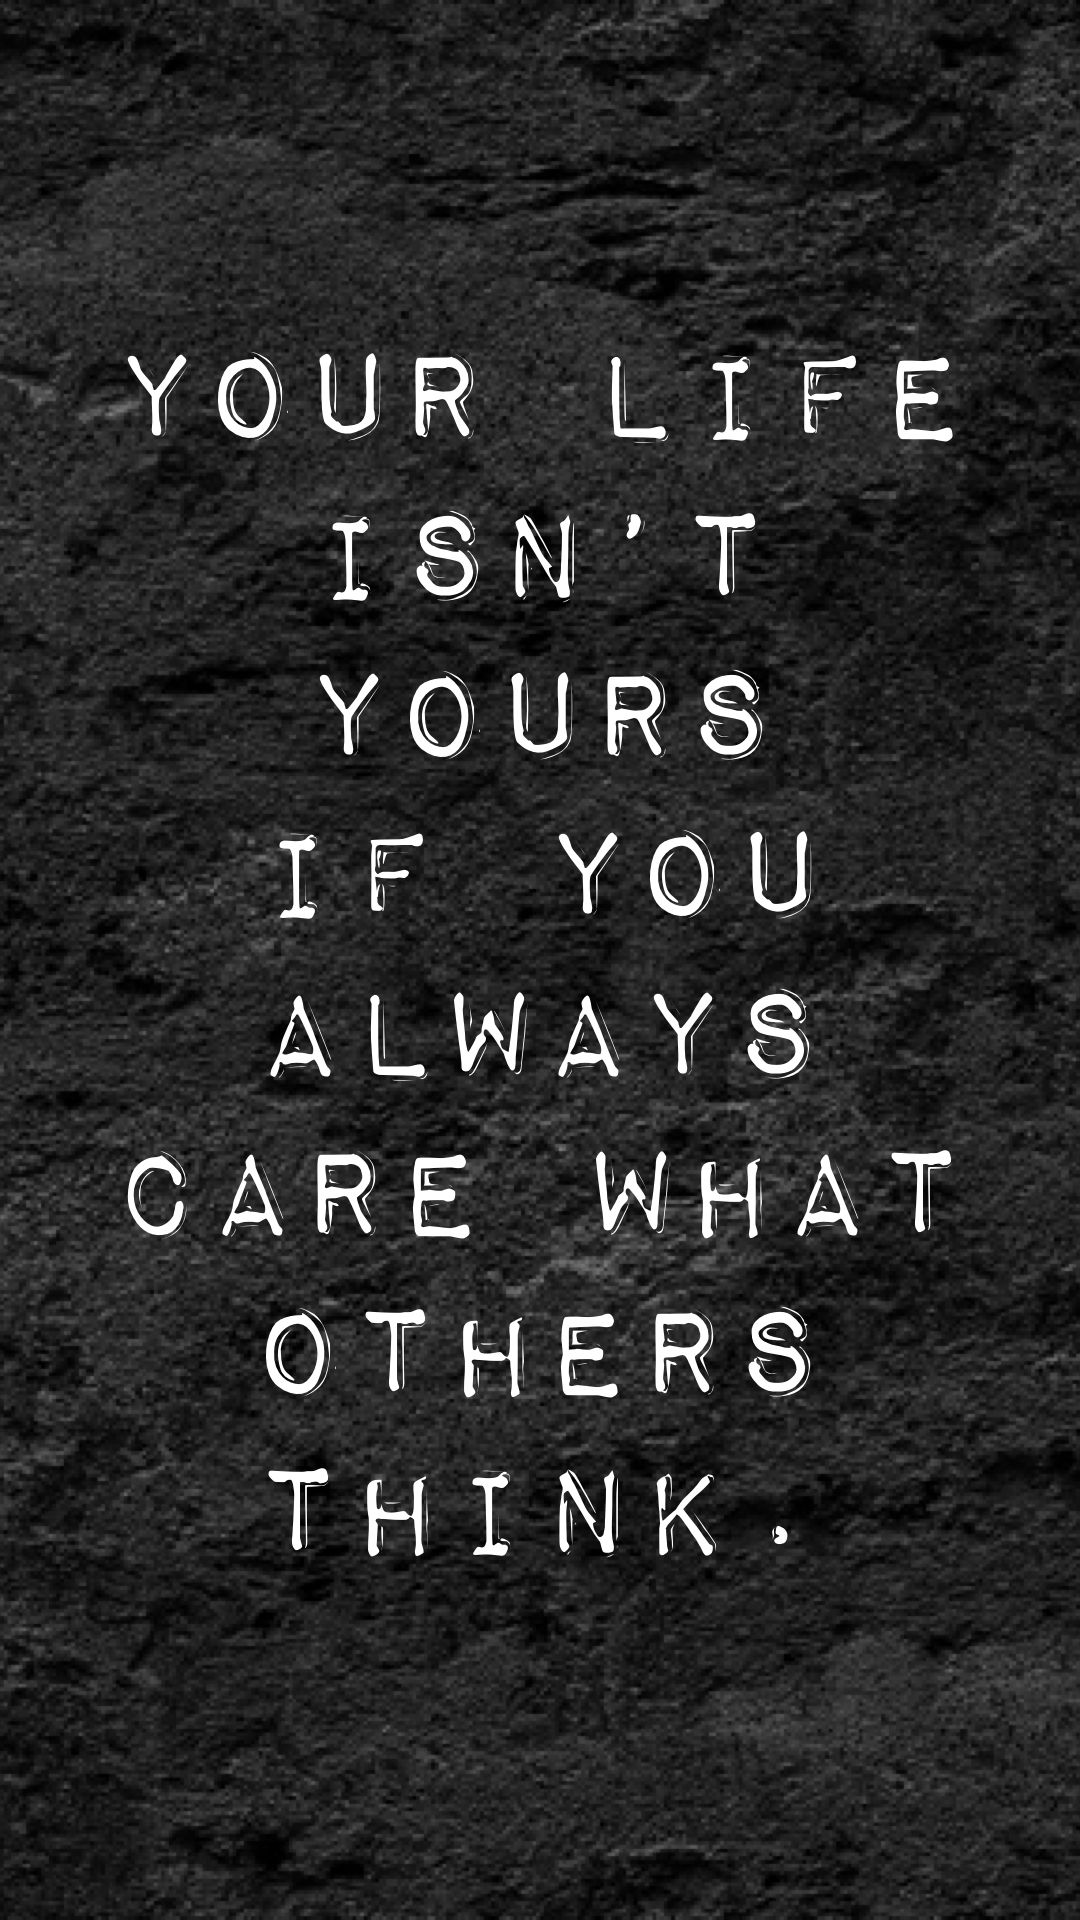 Phone wallpaper, phone background, quotes to live by, free phone wallpapers, free iPhone wallpapers